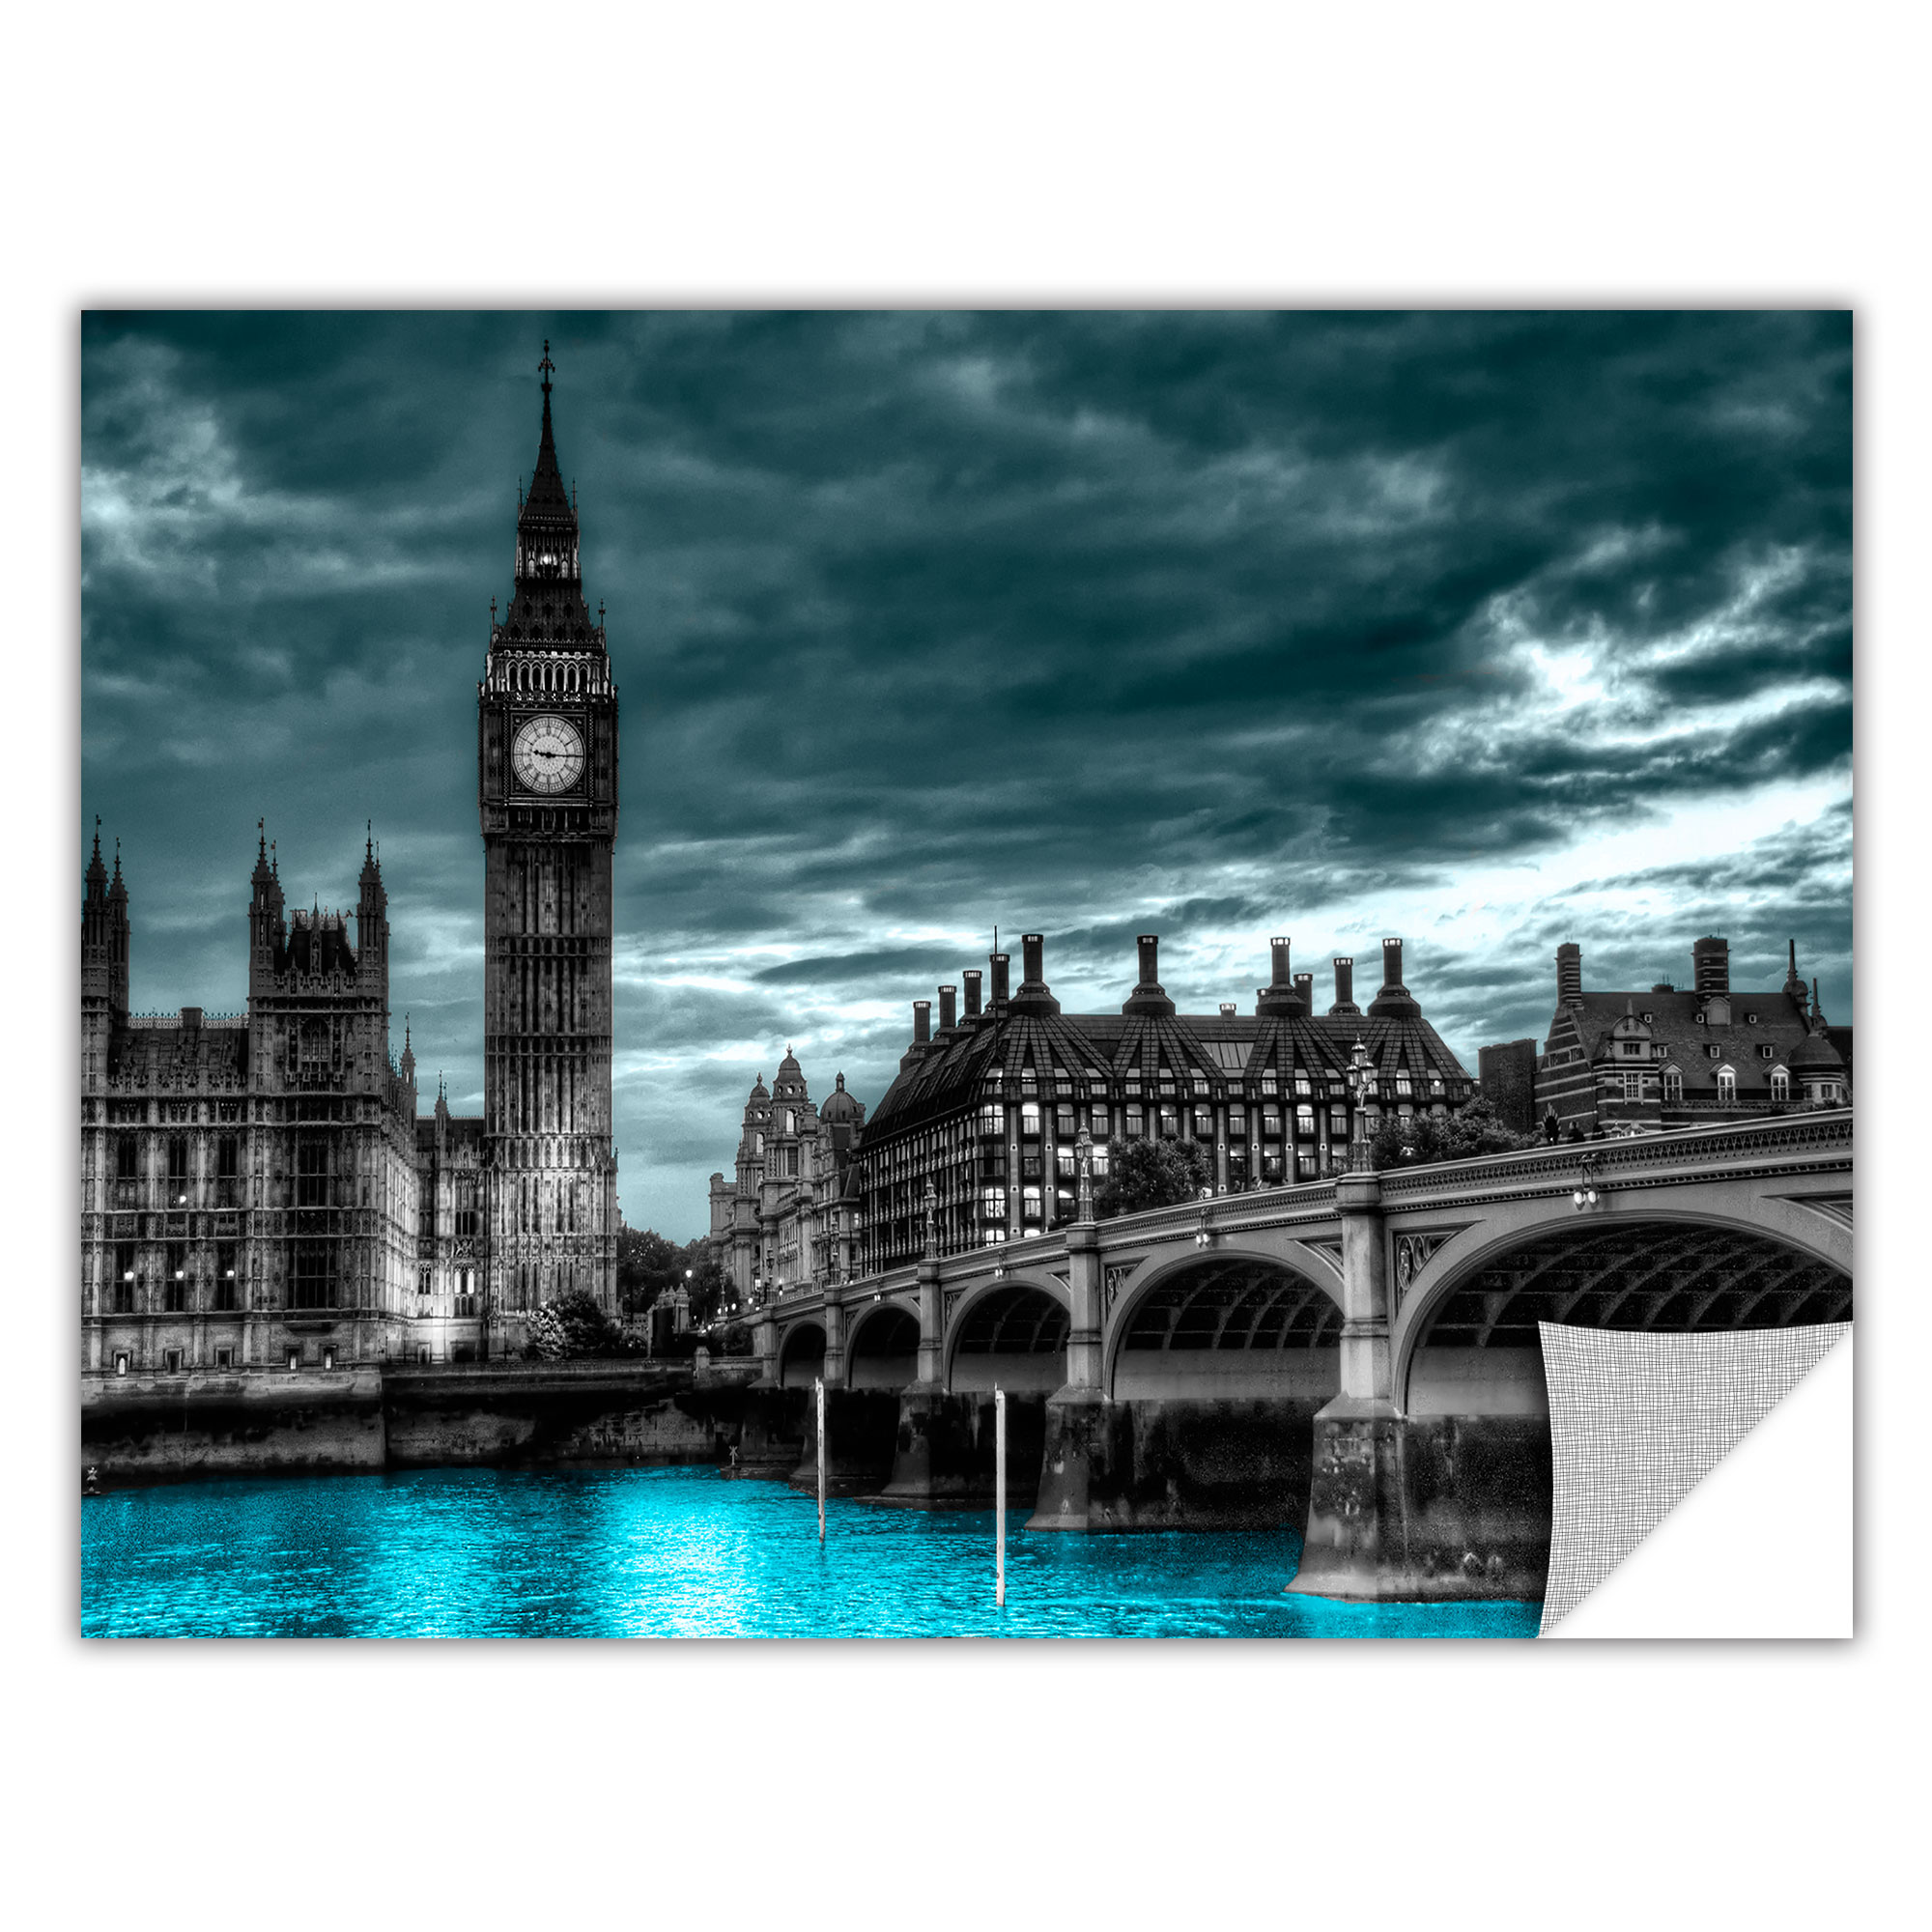 ArtWall ArtApeelz 'London' by Revolver Ocelot Graphic Art on Wrapped Canvas